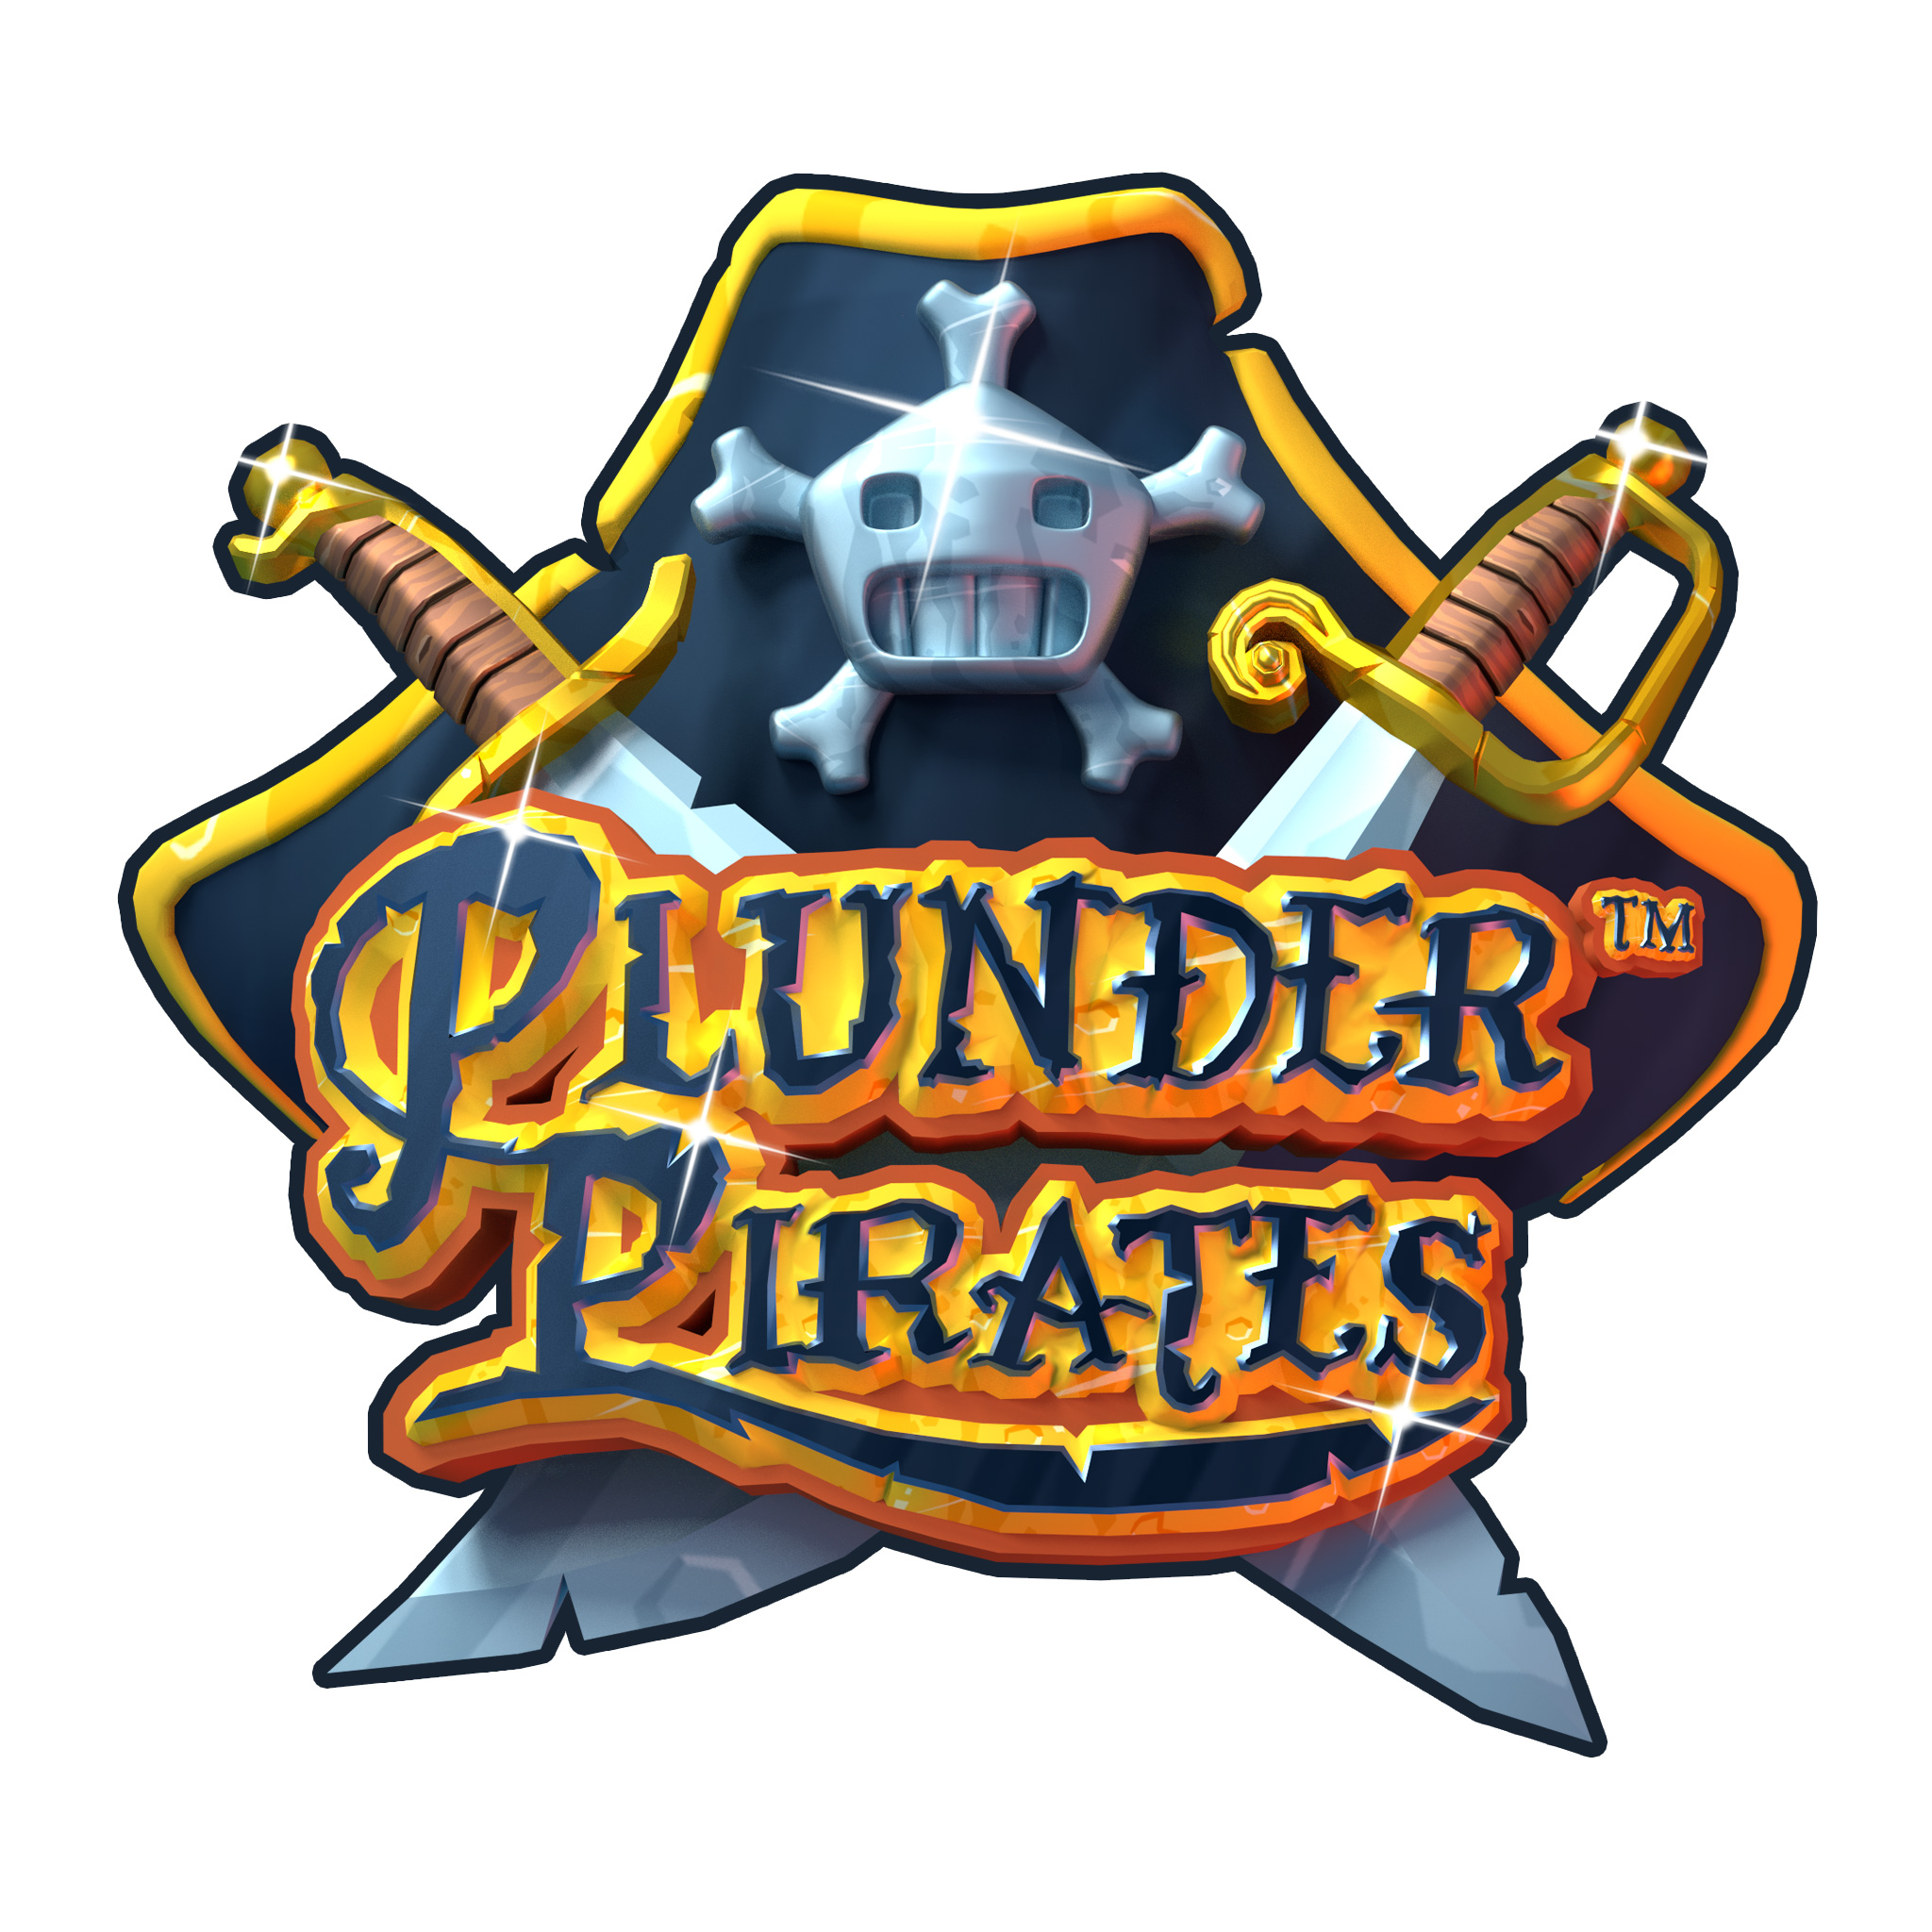 Plunder pirates logo rovio entertainment corporation for Plunder pictures